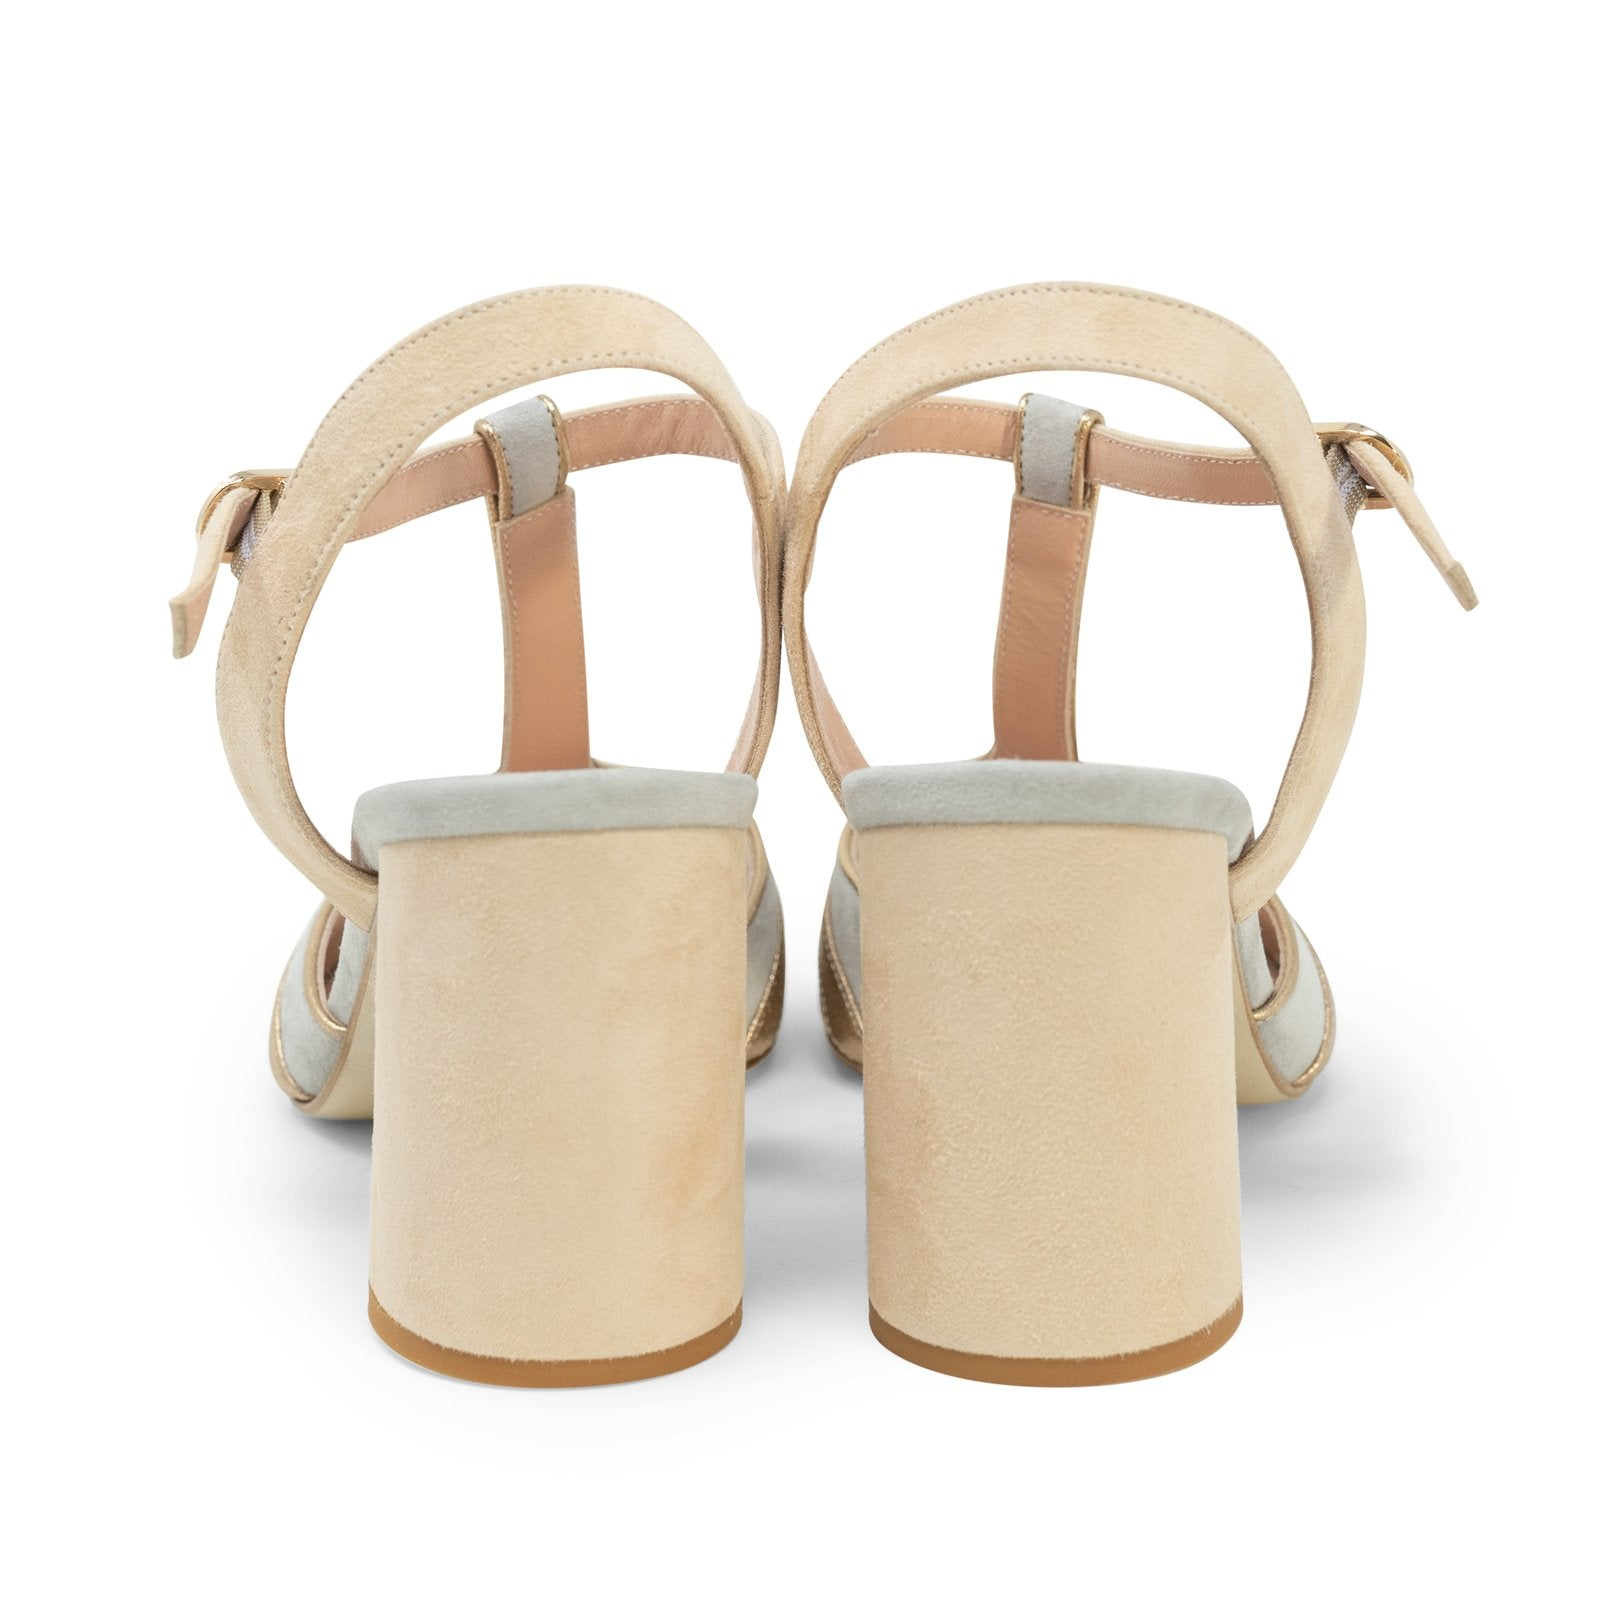 Women High Heel Block Sandals in Sabbia - Jennifer Tattanelli